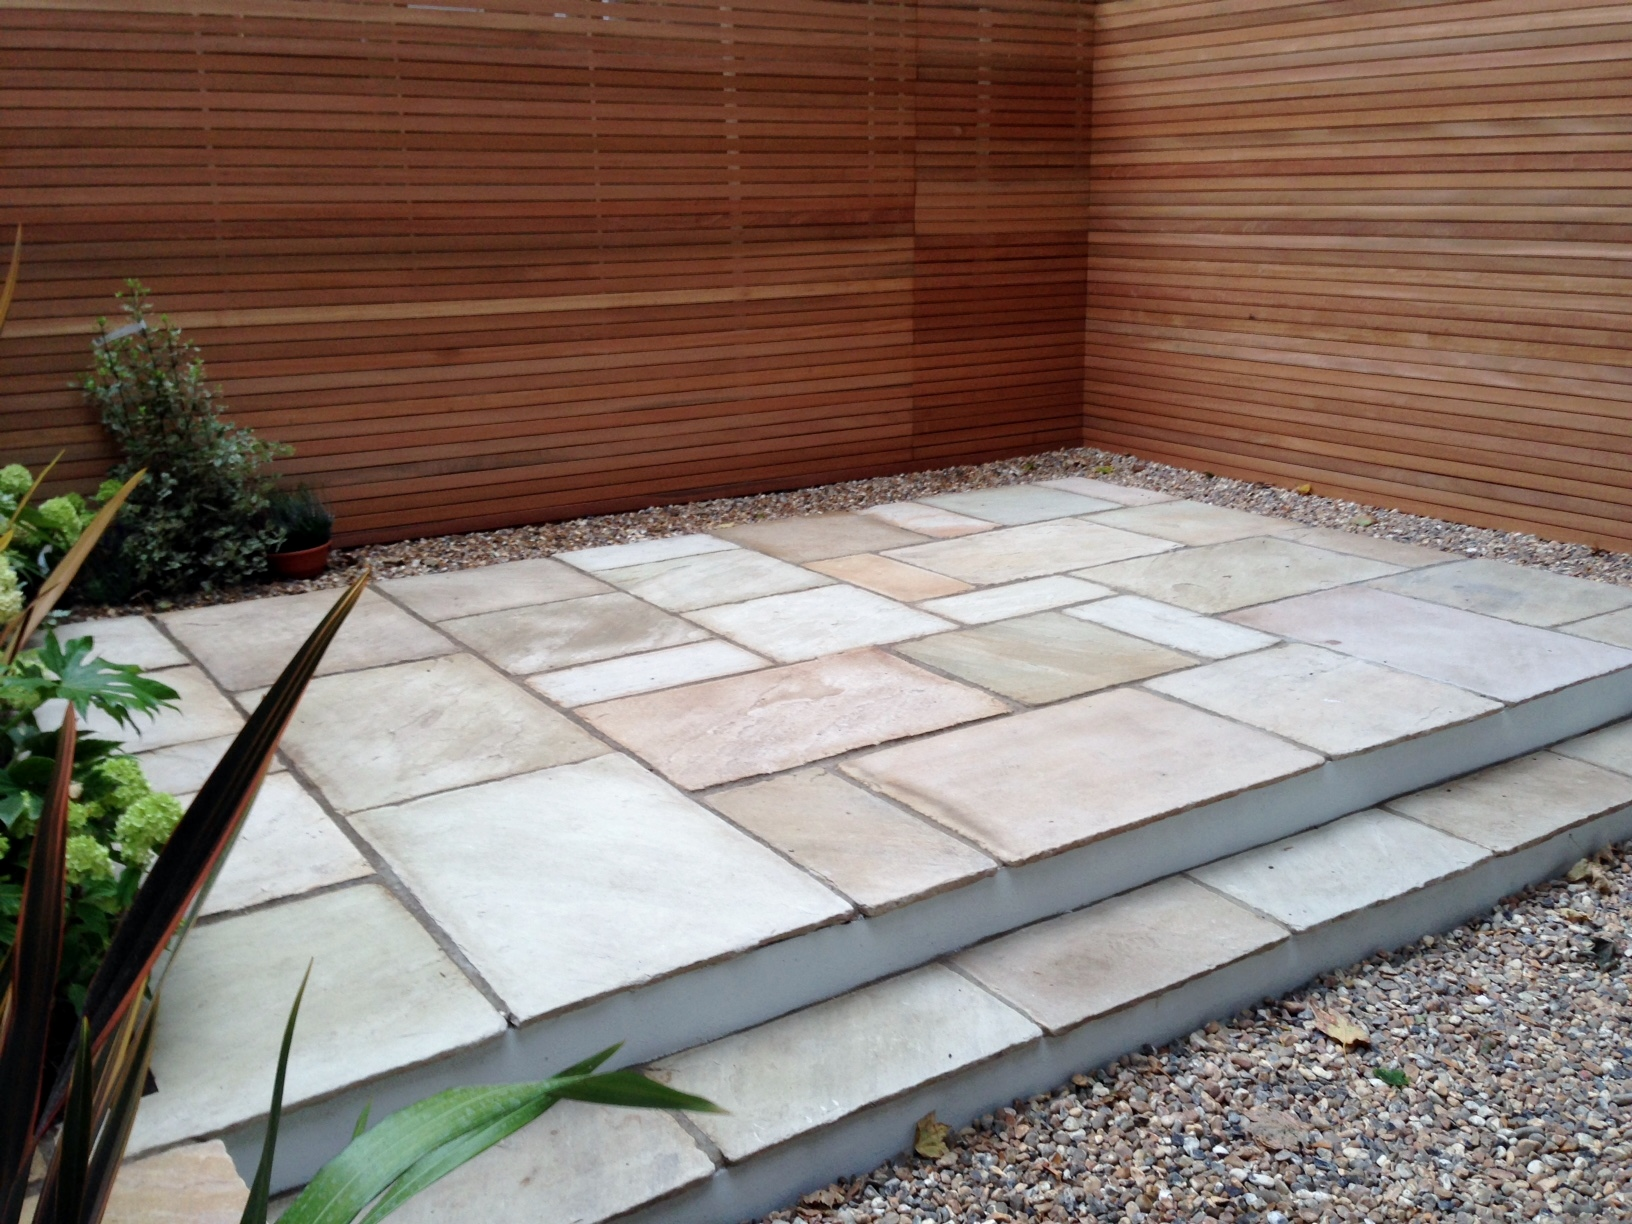 clapham garden design sandstone paving hardwood privacy screen shingle trellis fence modern low maintenance ideas (12)